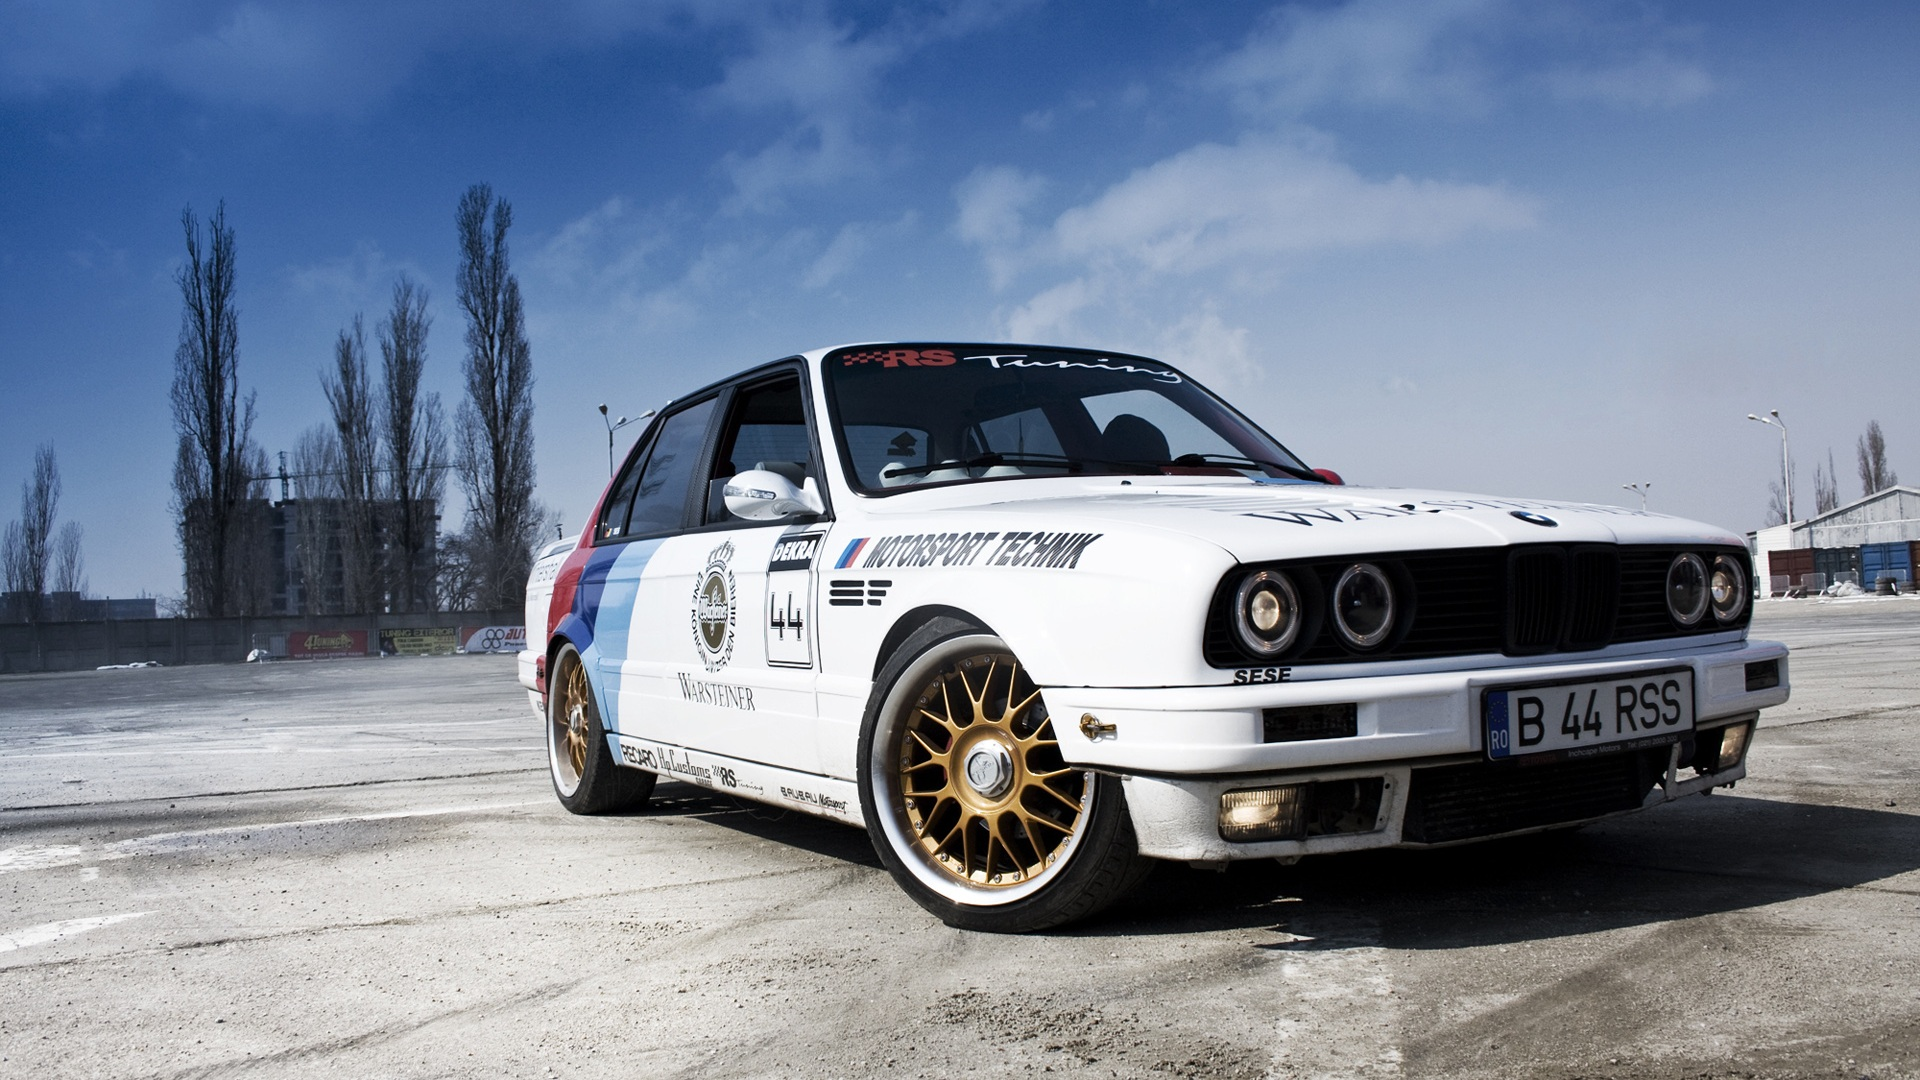 Wallpaper Bmw 3 Series Sedan E30 White Car 1920x1200 Hd